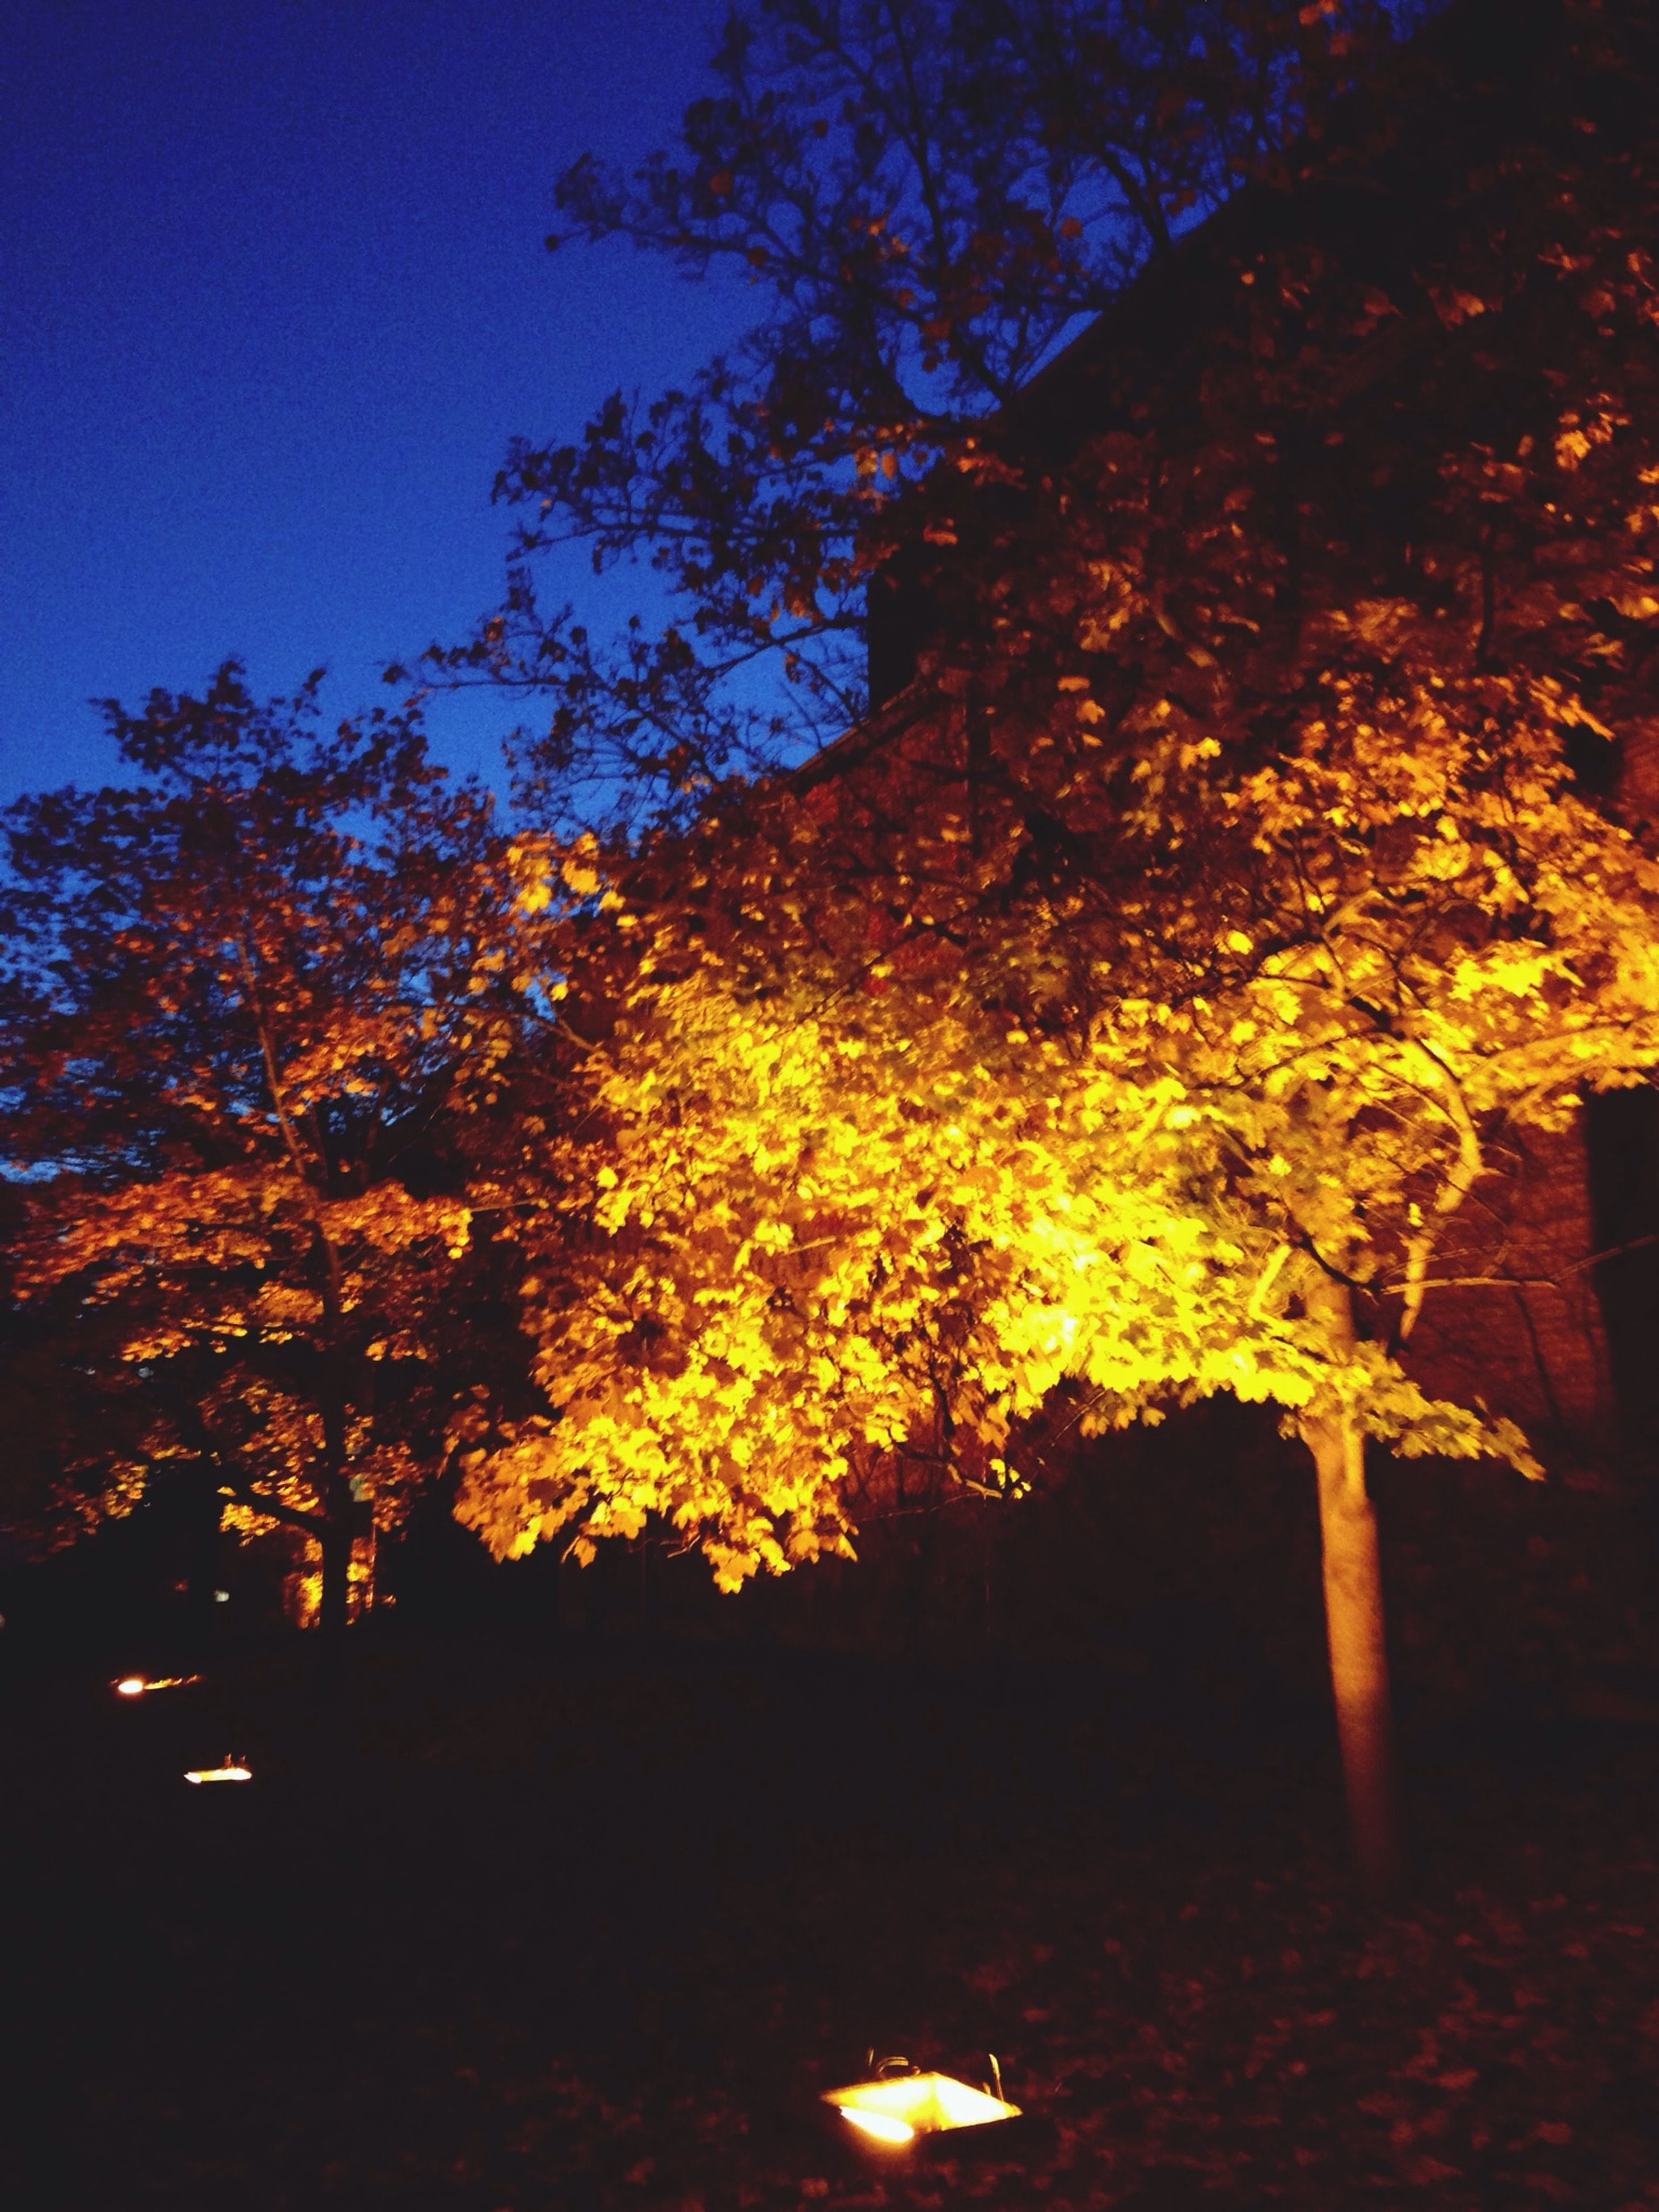 tree, night, orange color, low angle view, growth, sunset, nature, branch, sunlight, silhouette, illuminated, clear sky, tranquility, outdoors, no people, beauty in nature, shadow, autumn, built structure, yellow